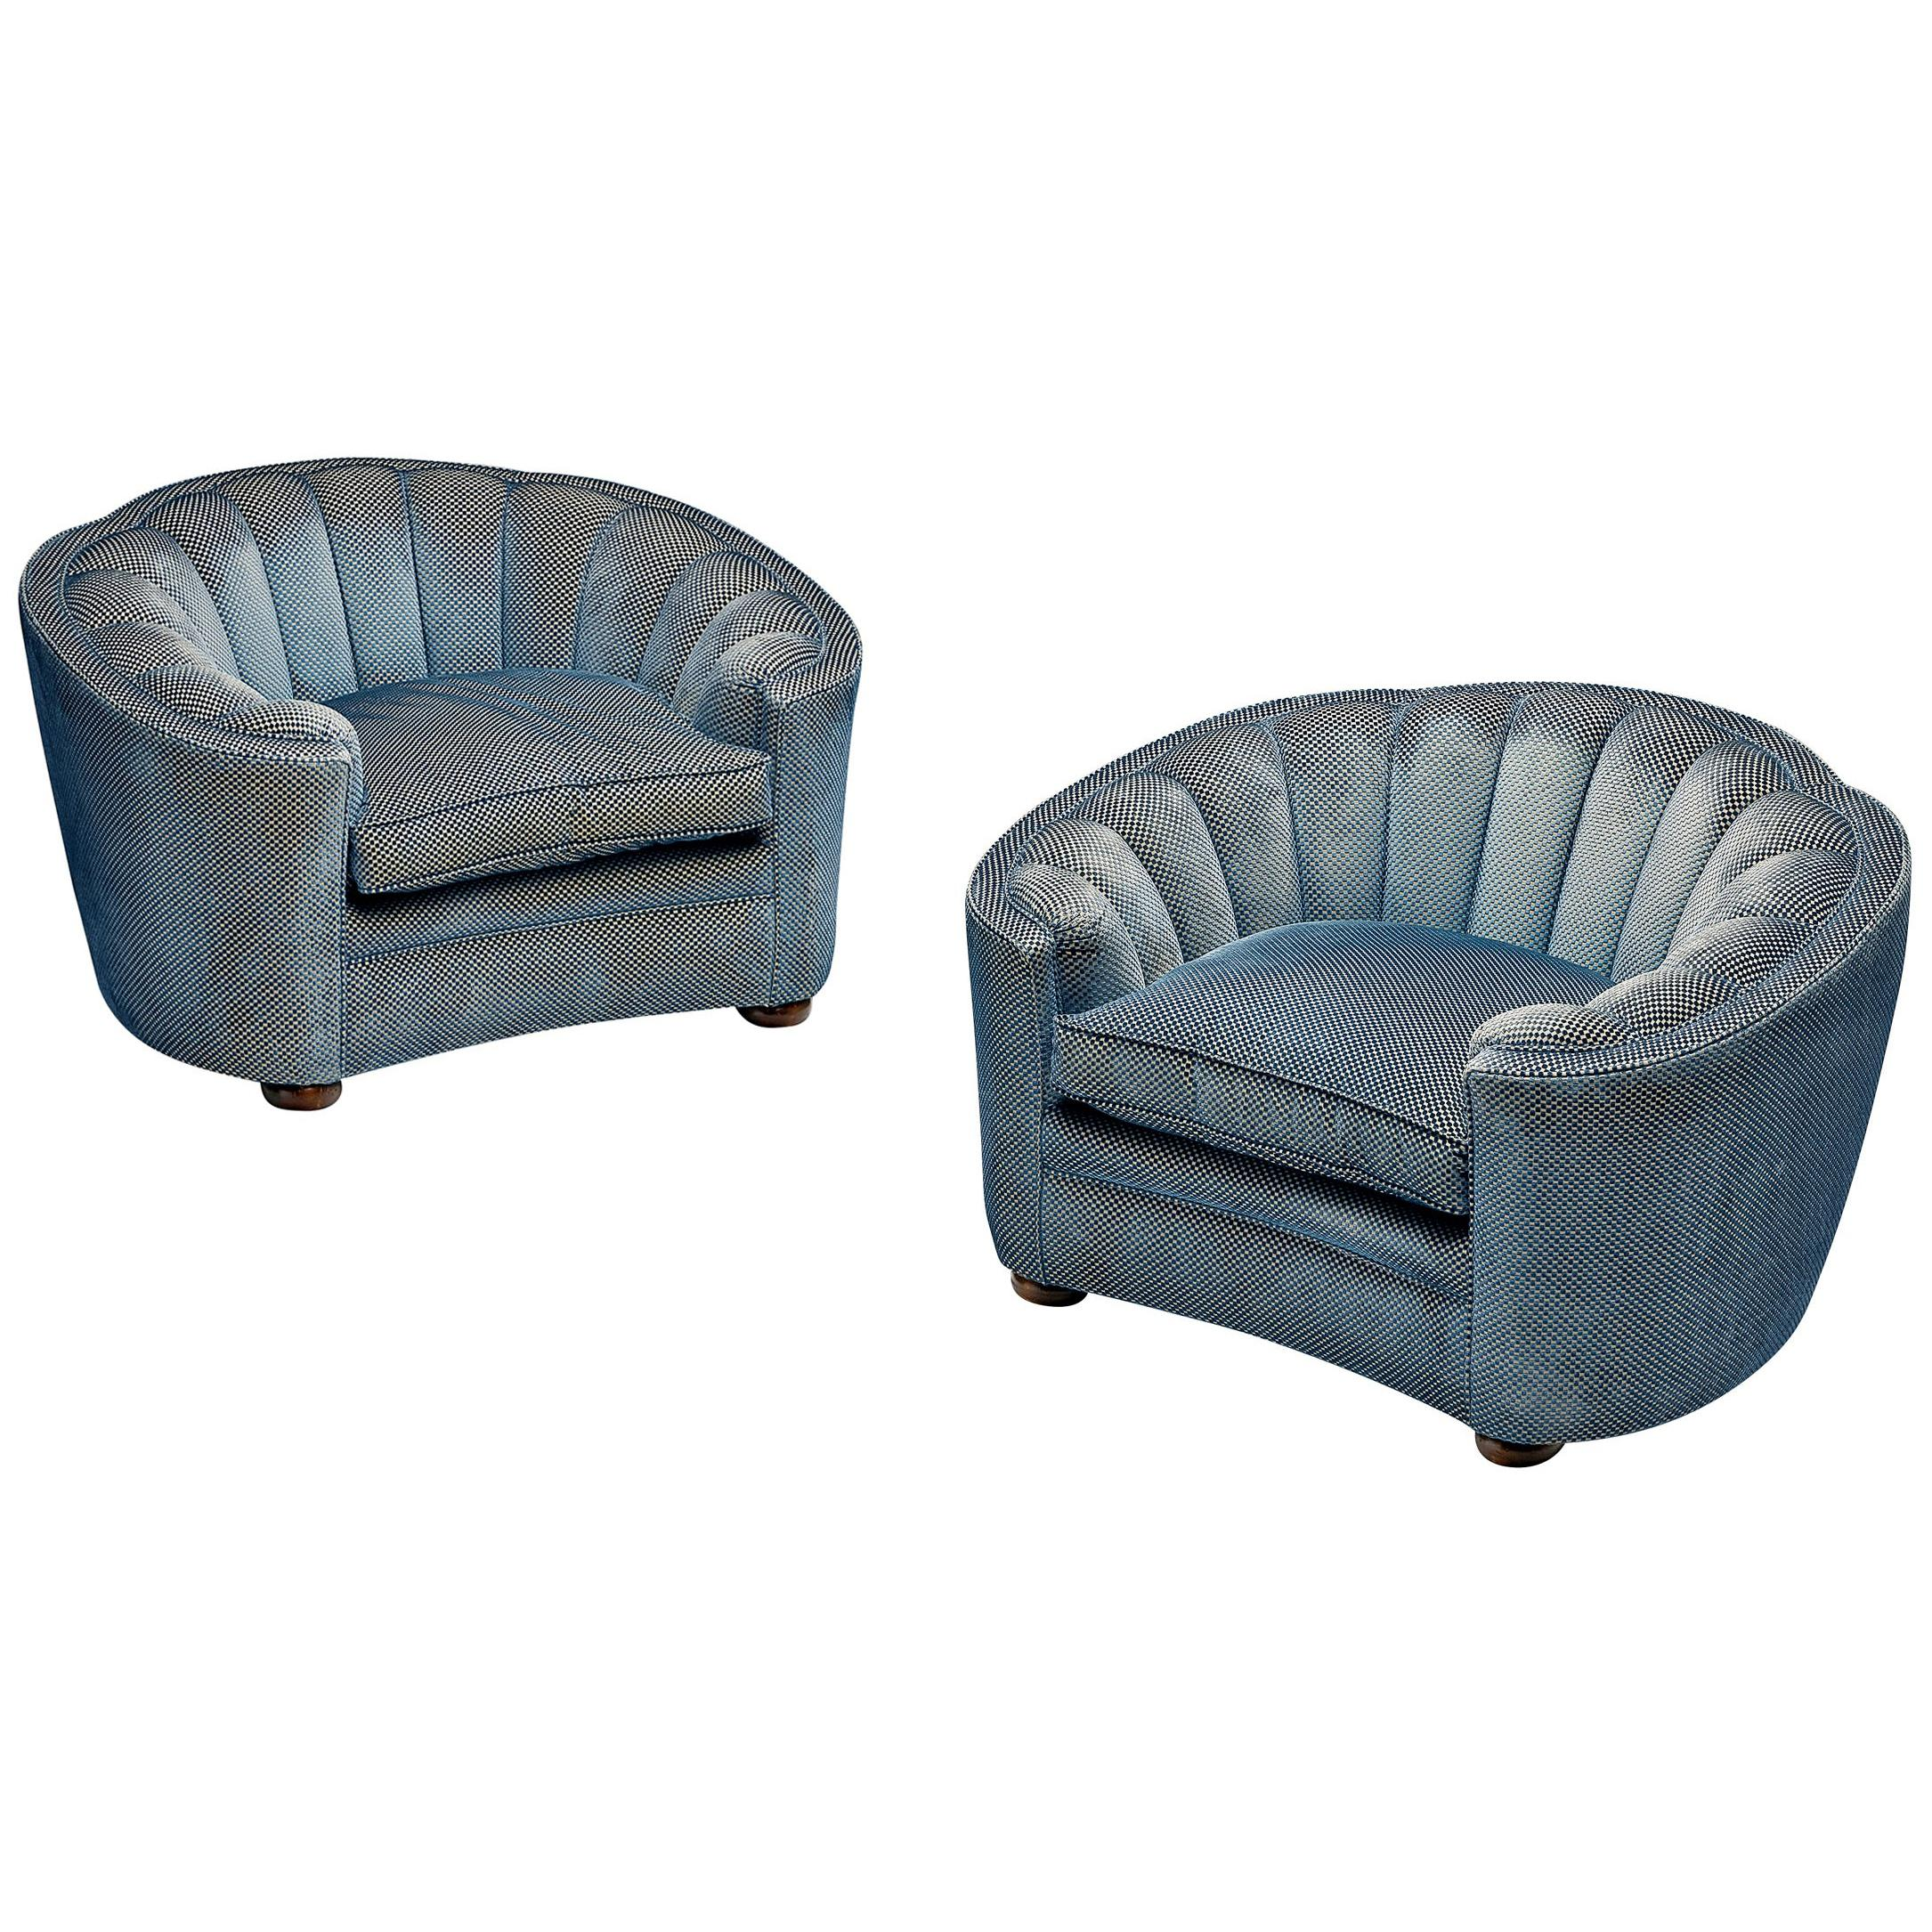 Pair of Large Italian Lounge Chairs in Soft Blue Upholstery